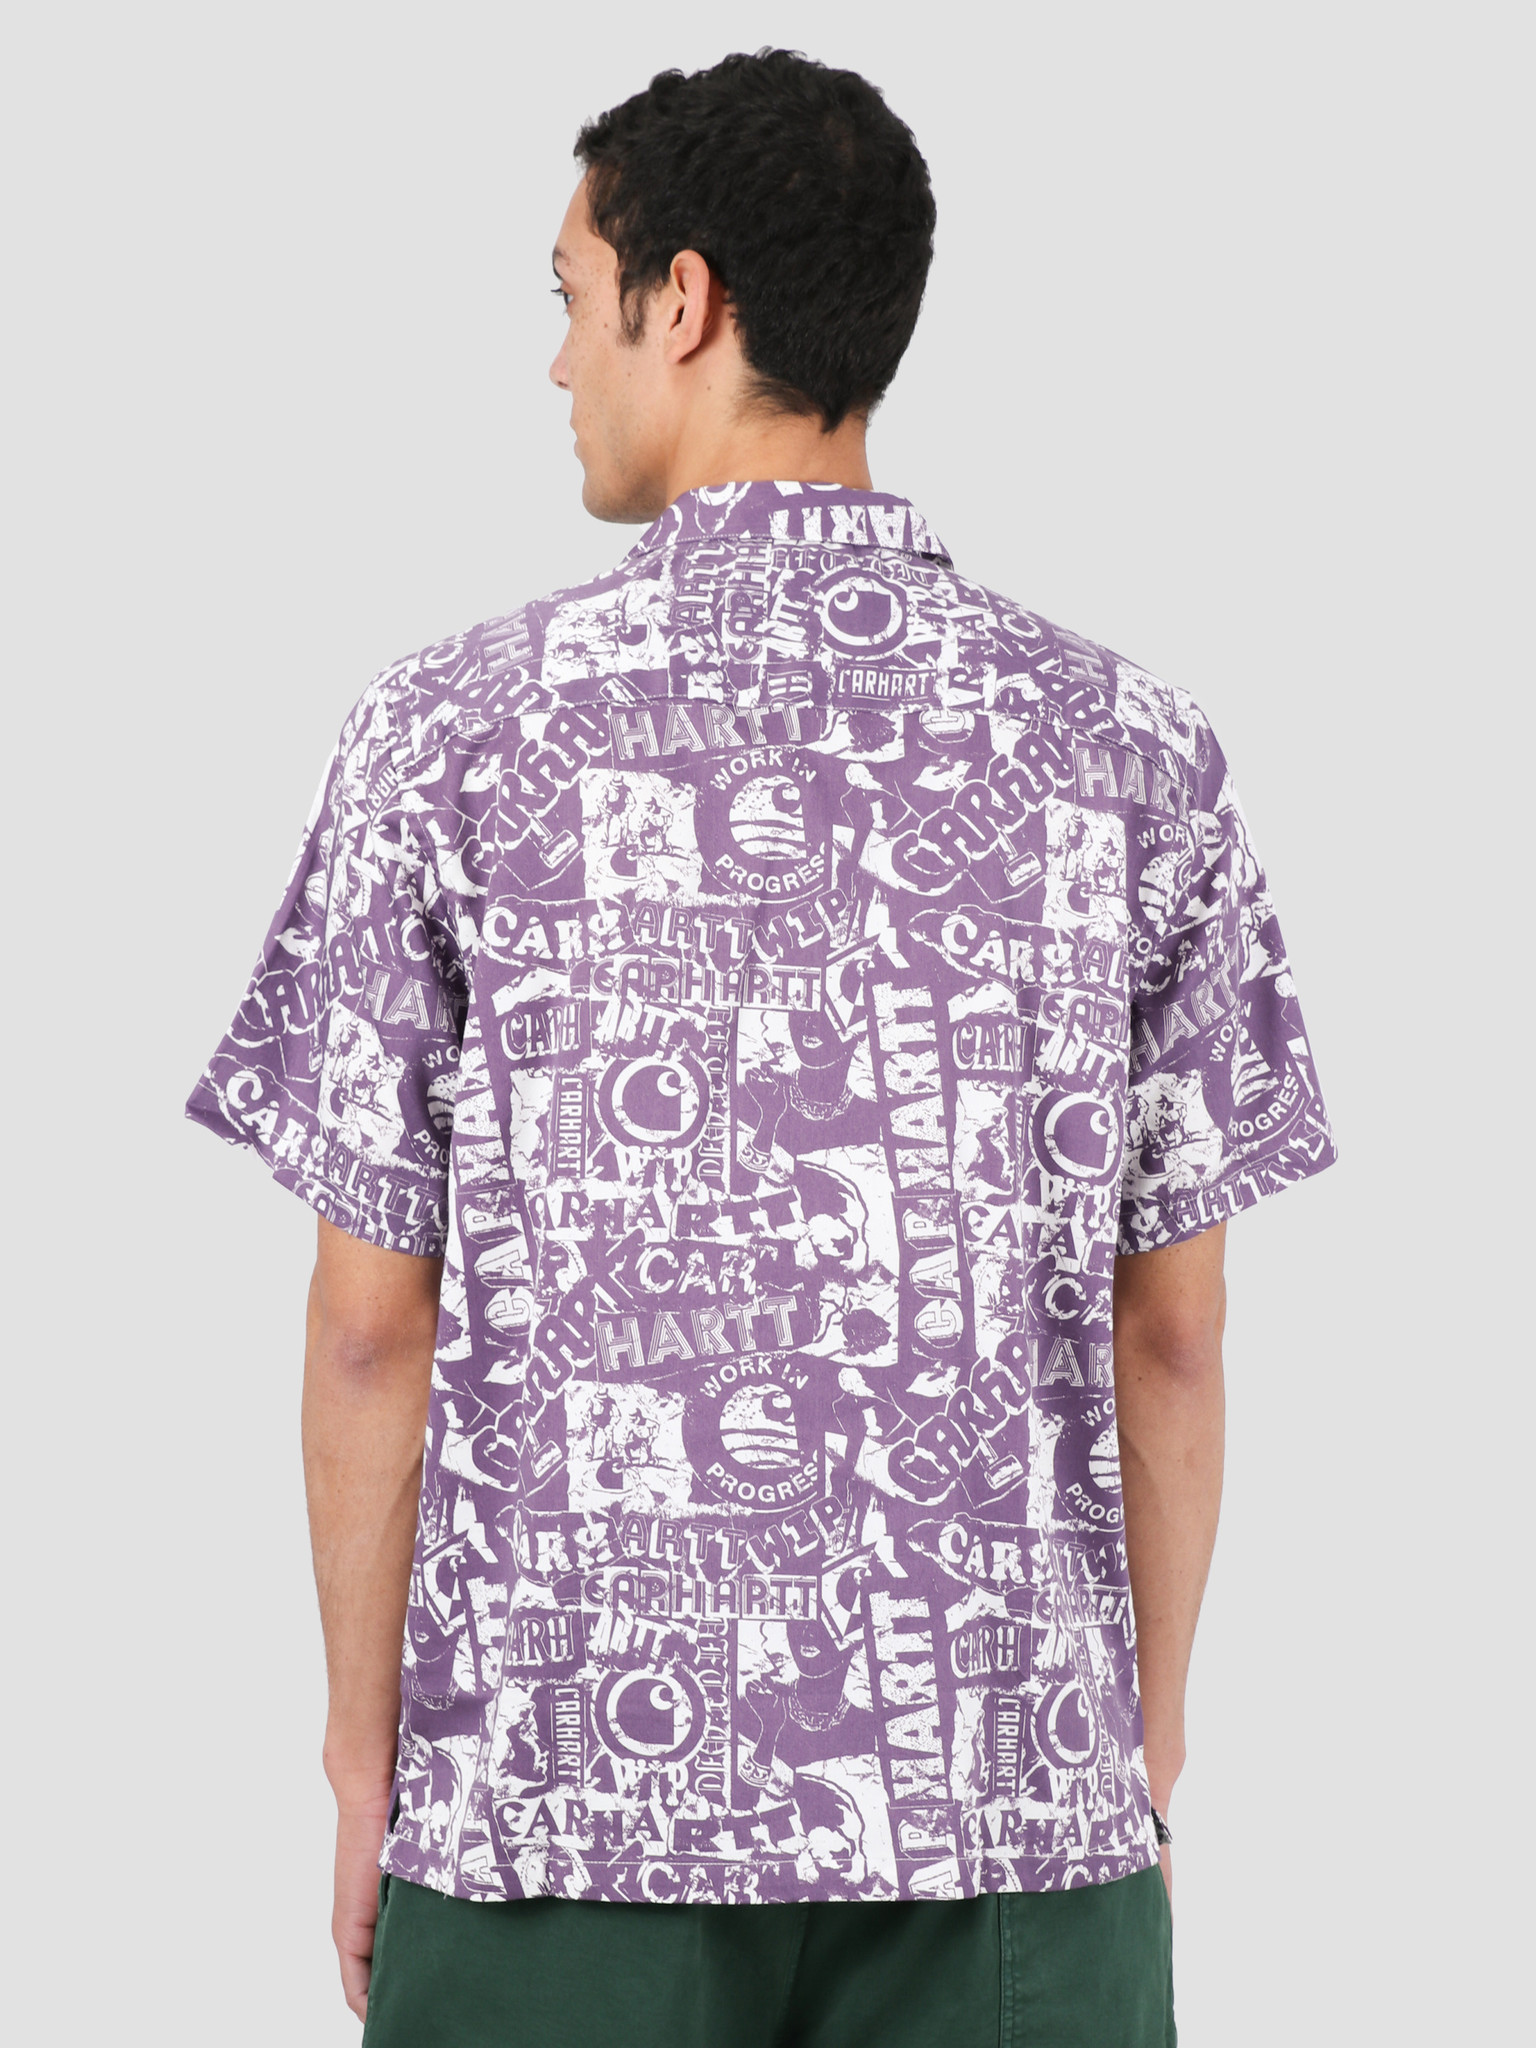 Carhartt WIP Carhartt WIP Collage Short Sleeve Shirt Collage Print Decent Purple White I027532-09O00